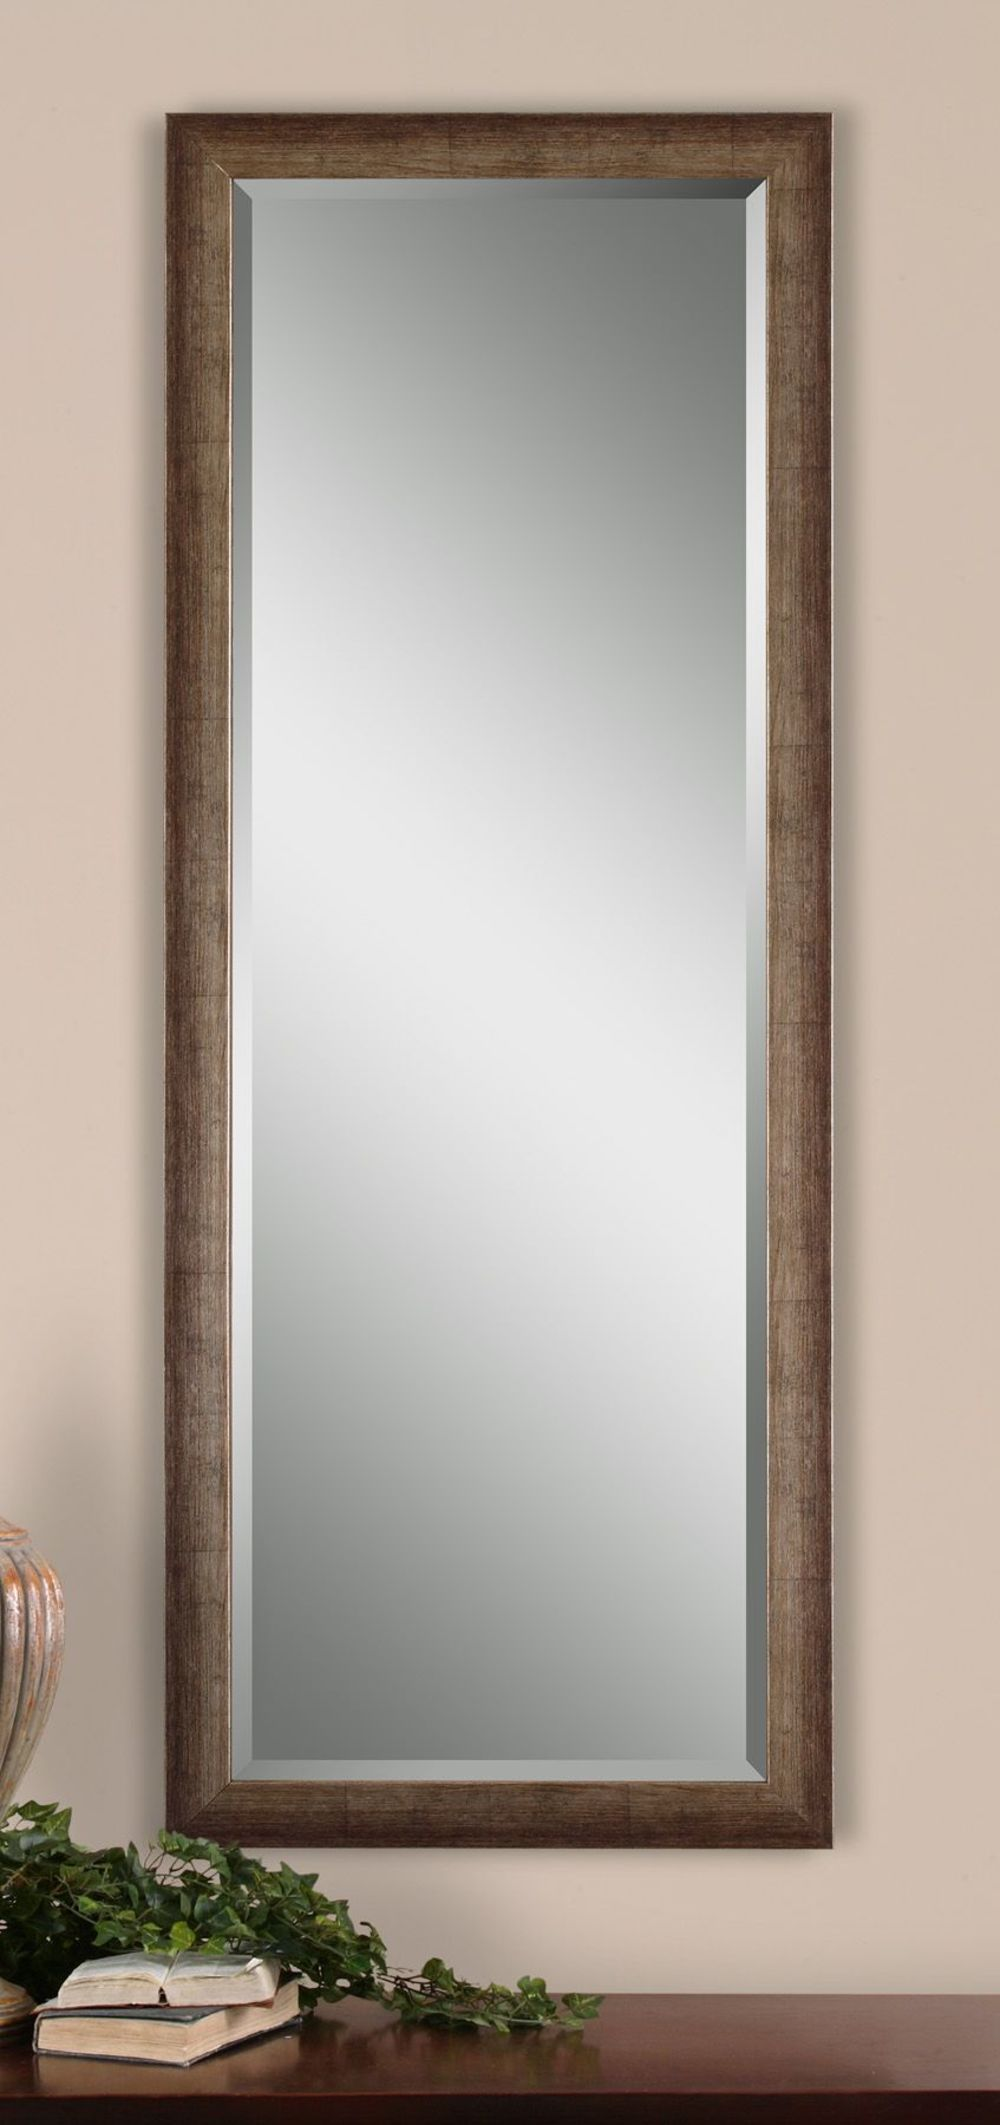 Uttermost Company - Lawrence Dressing Mirror